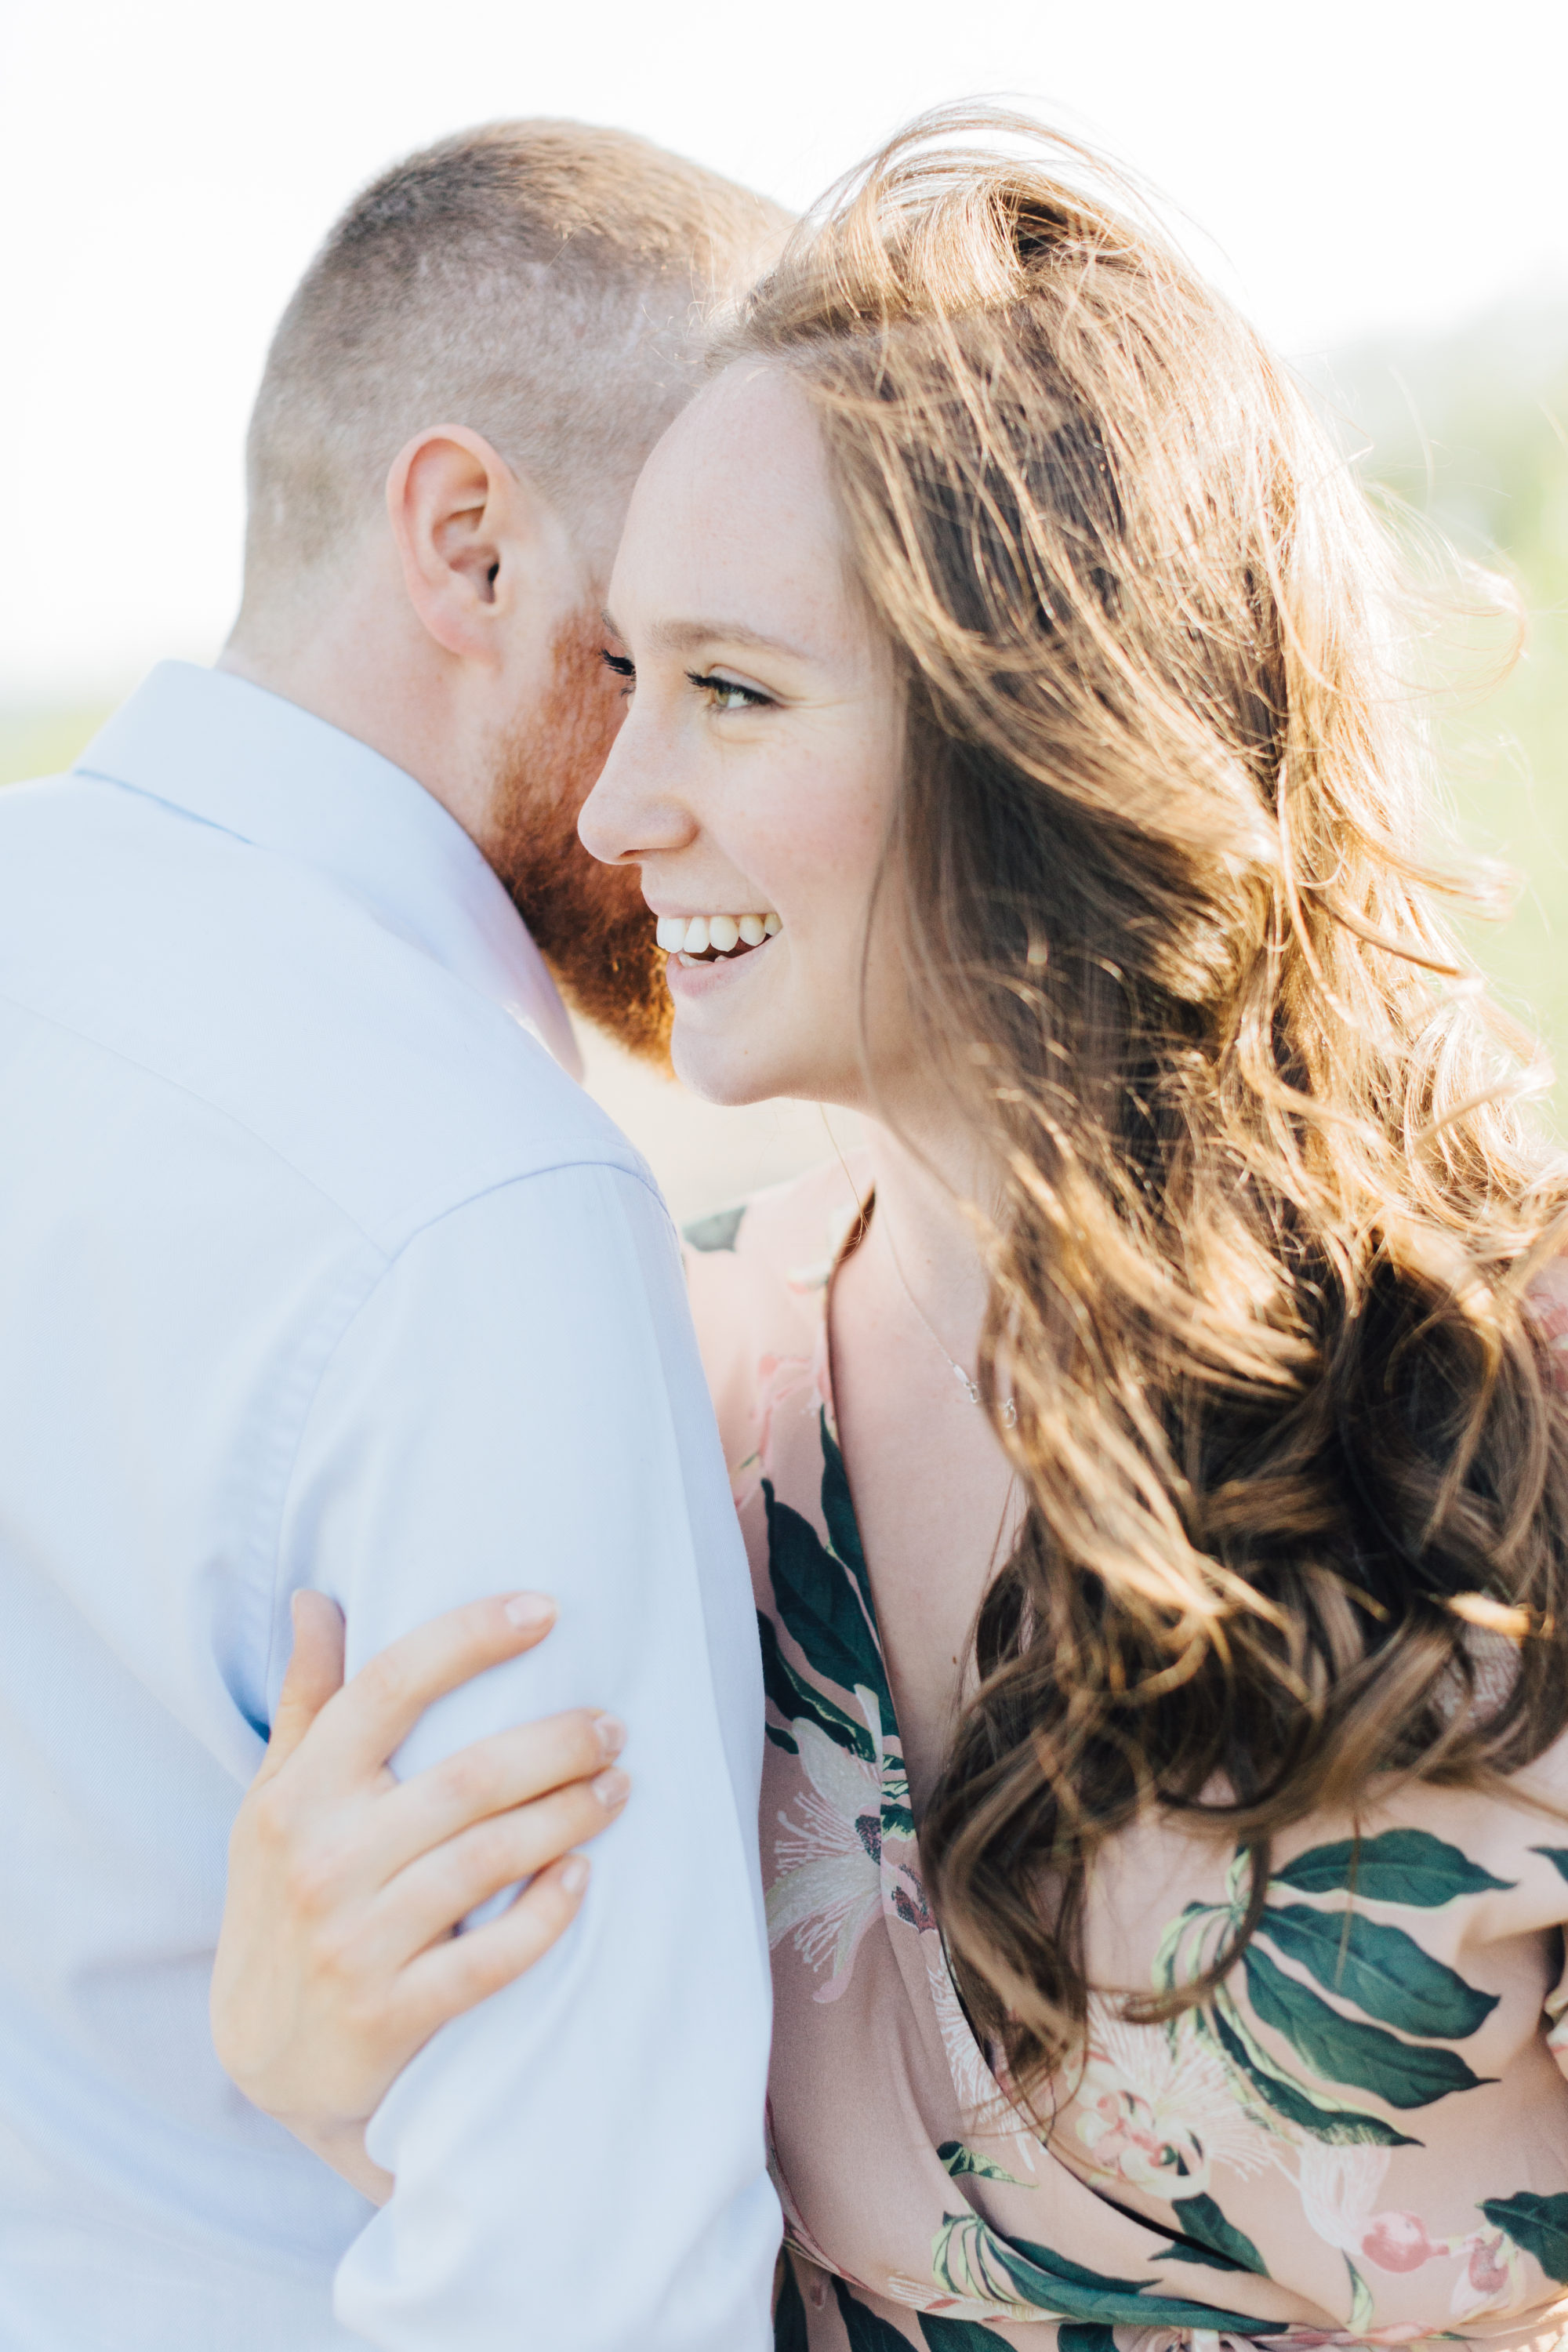 Couple laughing at Engagement session at Cherry beach